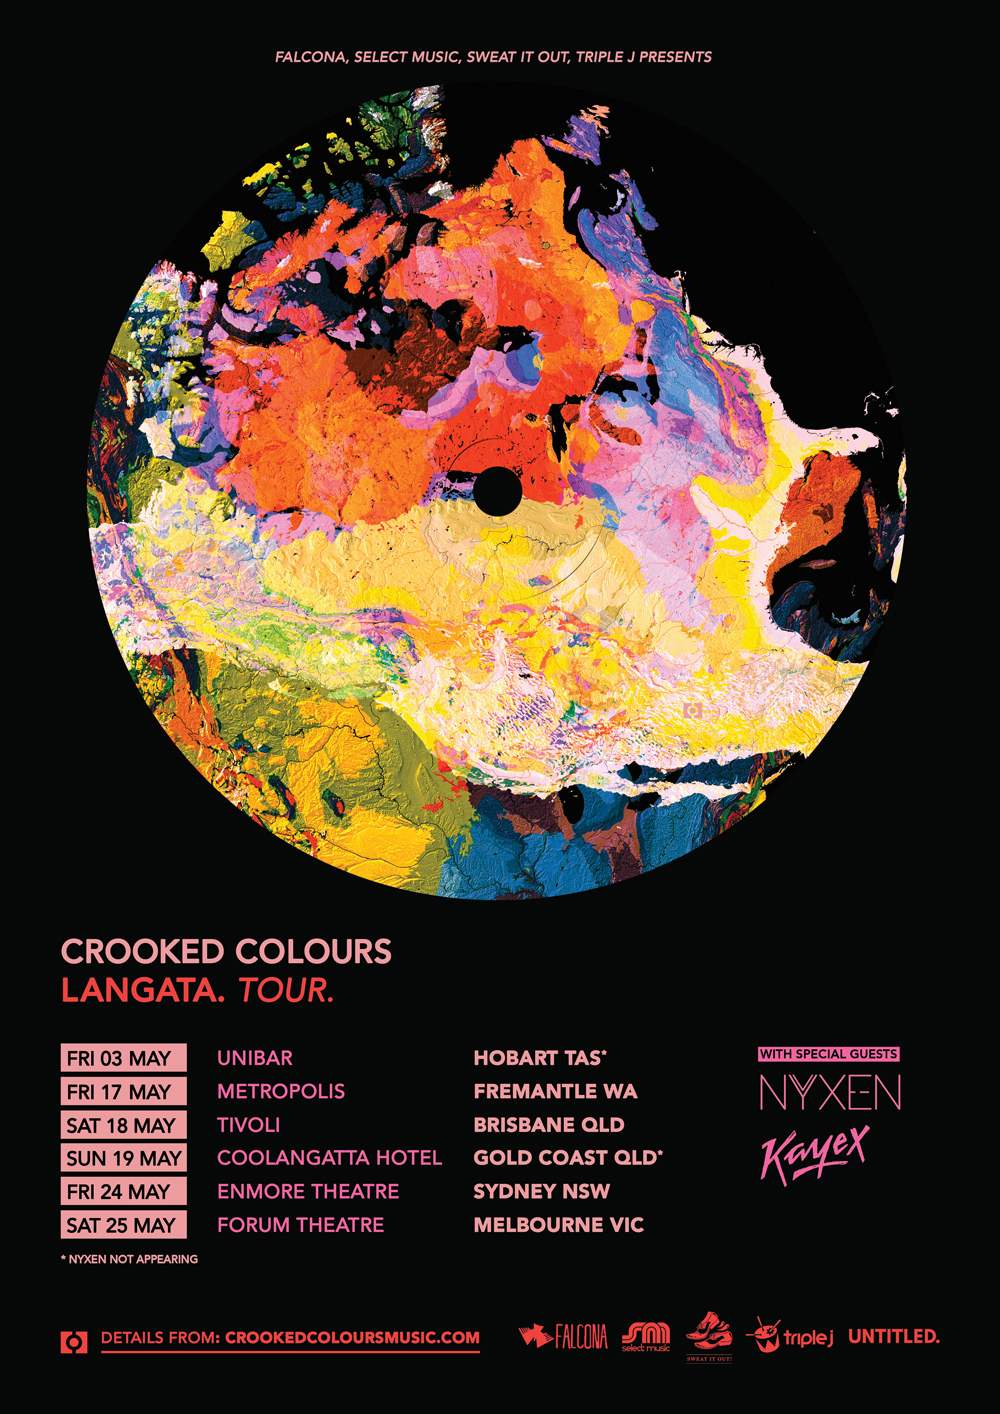 "After wowing audiences with two new tracks from the highly anticipated sophomore album Langata at the tail-end of 2018, Crooked Colours have announced that they will be bringing their unique brand of electronic dance music to audiences all around the country throughout April and May 2019, before heading overseas for a run of exclusive dates in June.  Fresh from closing out stages across the country for St. Jeromes Laneway Festival, the group will be joining the party at renowned Aussie festival Groovin' The Moo, before embarking on their biggest headline shows to date.  Groovin' will see the band moving through regional towns Wayville, Maitland, Canberra, Bendigo, Townsville and Bunbury, while the headline tour will hit metro venues Unibar in Hobart, Metropolis in Fremantle, The Tivoli in Brisbane, Coolangatta Hotel on the Gold Coast, Enmore Theatre in Sydney, and wrapping up at the iconic Forum Theatre in Melbourne on May 25.  Joining Crooked Colours on the headline dates will be fellow triple j faves Nyxen and Kayex.    Crooked Colours, consisting of members Philip Slabber, Leon De Baughn and Liam Merrett-Park, burst onto the scene in 2013 with breakout singles Come Down, Capricious and Another Way, earning three consecutive #1's on Hype Machine and gaining a solid fanbase around the world.  The result of a patient approach from an act determined to create a timeless debut, their album Vera released in 2017 demonstrated diverse and layered productions from a breed proving themselves as one of Australia's hottest rising acts in electronic music today.  Hit singles Flow, I Hope You Get It and Come Back To You were been picked up by radio stations and press around the world such as Radio 1, Eins Live, triple j, Majestic Casual to name a few.  To date, the band has had over 50 million streams on their debut accompanied by award winning music videos for all previously released singles.    With new tracks from the trio I'll Be There and Do It Like You gaining rapid momentum towards the end of 2018 and into 2019, the mysterious second LP from Crooked Colours, entitled Langata, is expected to drop just before they hit the road for what will be their biggest Australian tour ever.  Thrilled about the upcoming dates, Crooked Colours' Philip enthuses, ""We're so excited about our upcoming headline shows - we get to curate the night, design the lighting and visuals, and play a full length set with music.  We always play tracks stretching from our first ever release Come Down, through our debut album Vera, and now we'll also be showcasing brand new music from our forthcoming album Langata.""    After taking Australia by storm with their ambitious and impressive new live show, Crooked Colours will be heading overseas to perform at some of the hottest festivals in the world, including Bonaroo and Firefly festivals, plus more.  Crooked Colours have established themselves as one of the hottest rising acts with the debut Vera.  Now they are on track to become one of our biggest electronic exports with this superb sophomore release.     CROOKED COLOURS LANGATA NATIONAL TOUR  Presented by Falcona, Select Music, Sweat It Out and triple j   FRI 26 APR  